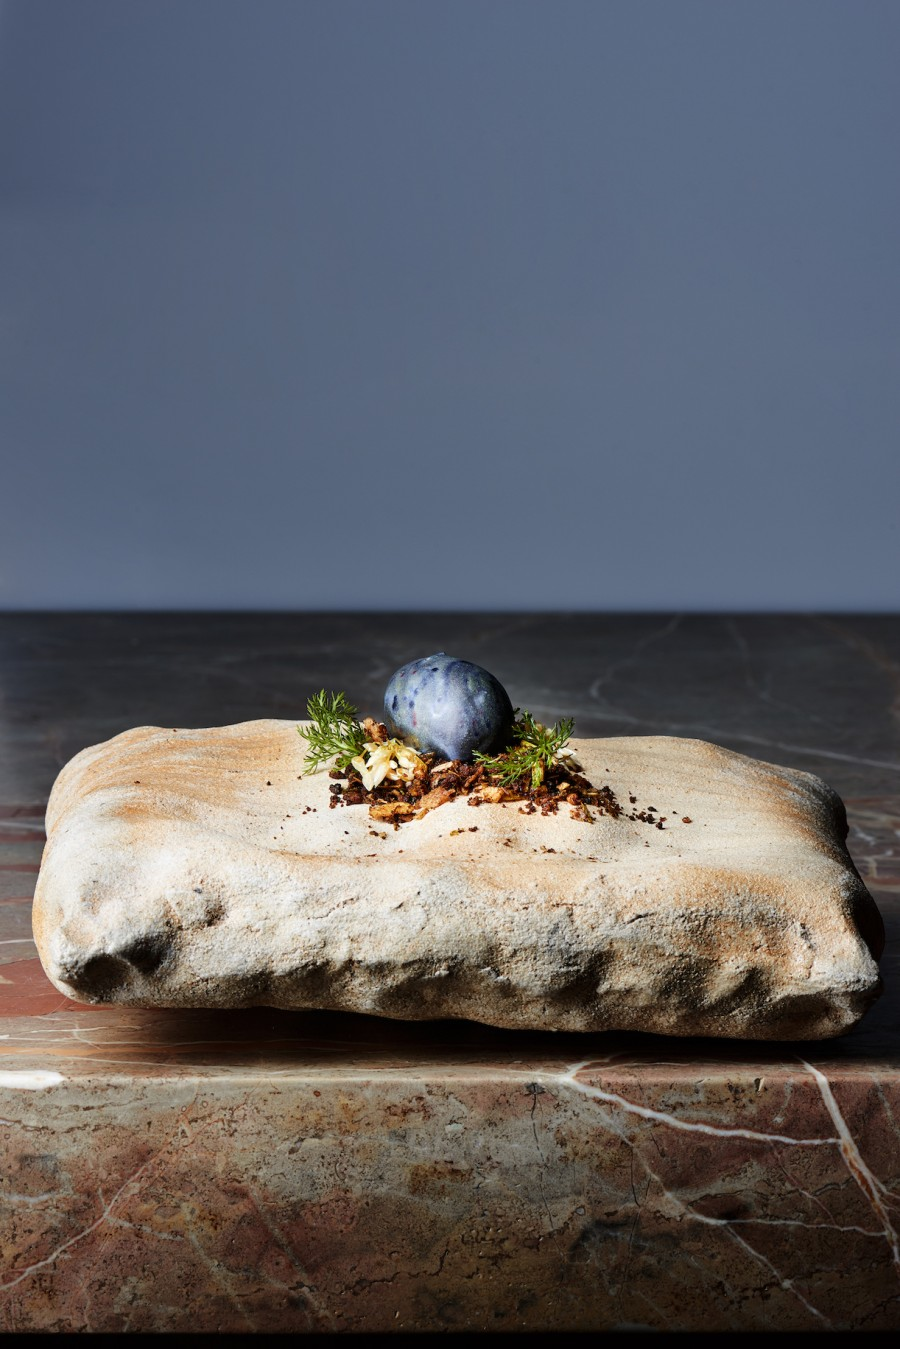 Potato, ramsom and black garlic served on a 'Pillow' plate by Tomasz Niedziolka. Photography by Fabian Häfeli.